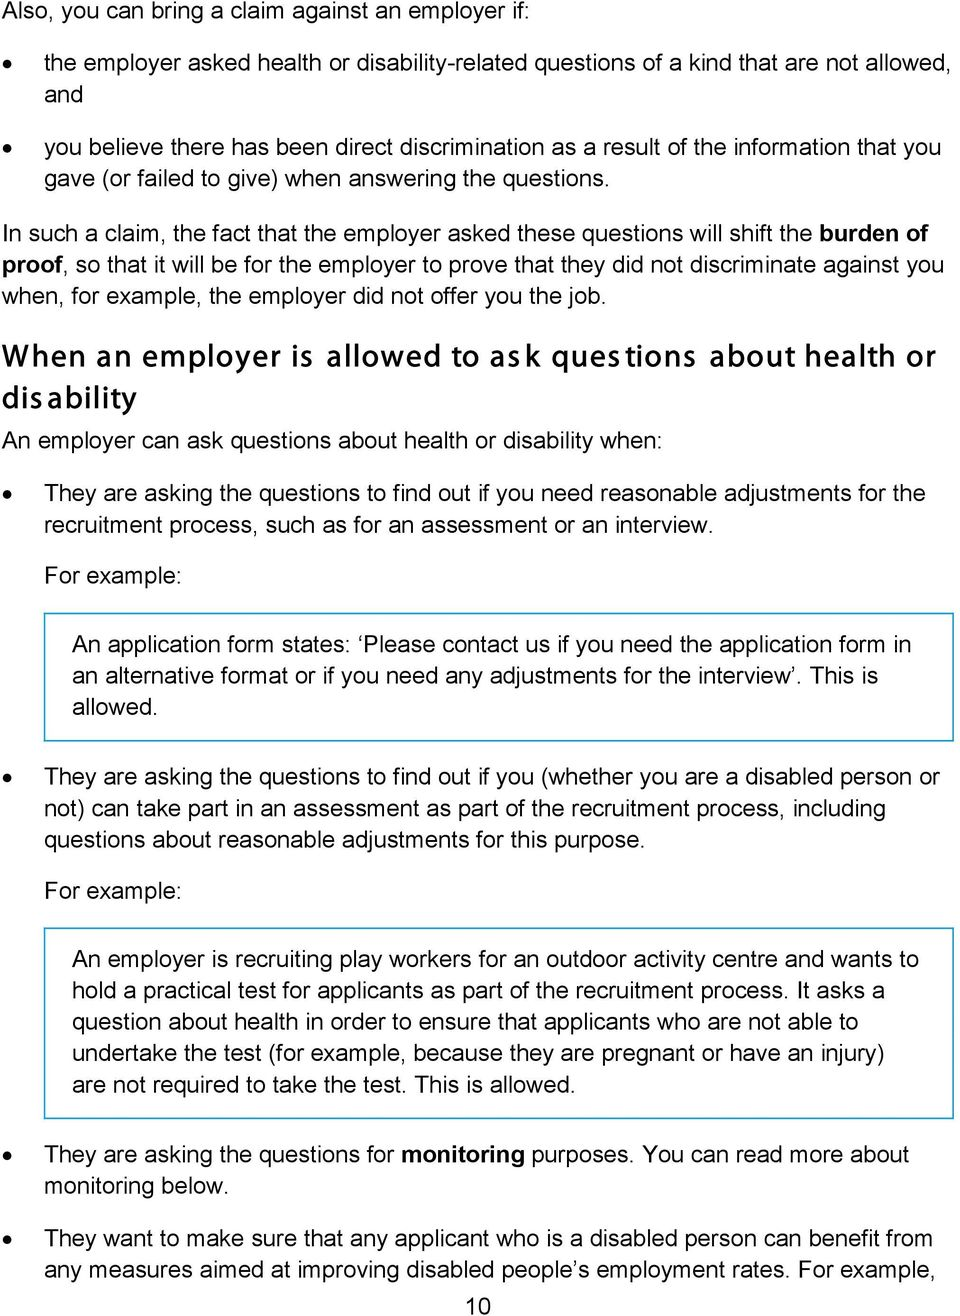 your rights to equality at work when you apply for a job pdf in such a claim the fact that the employer asked these questions will shift the